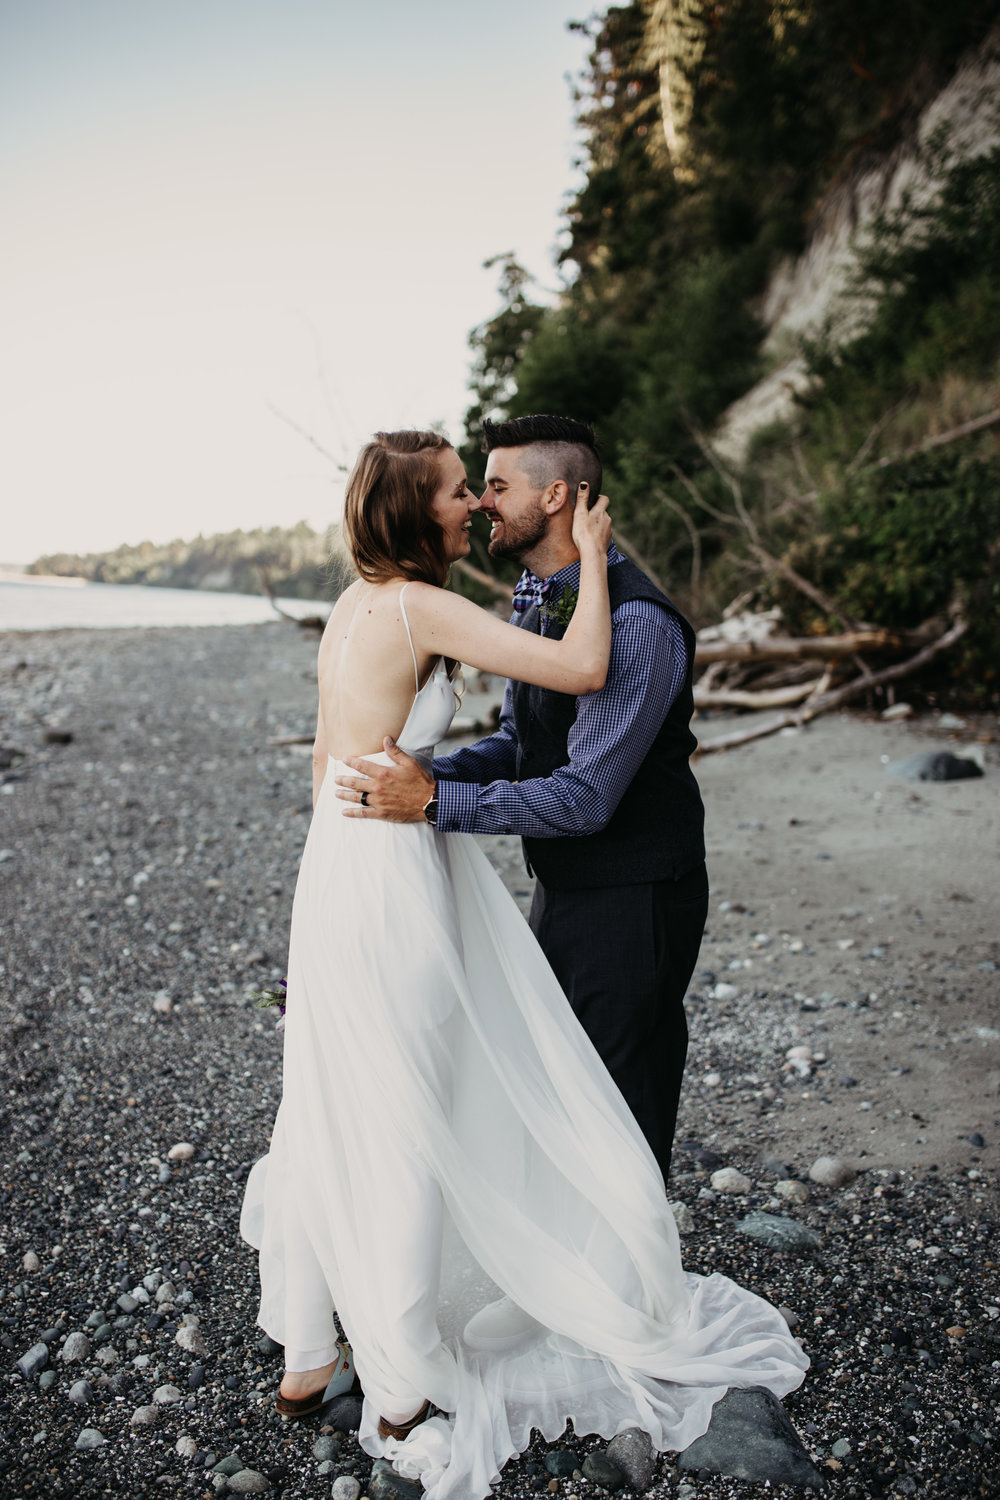 Matt & Erica - Seattle Coast Wedding